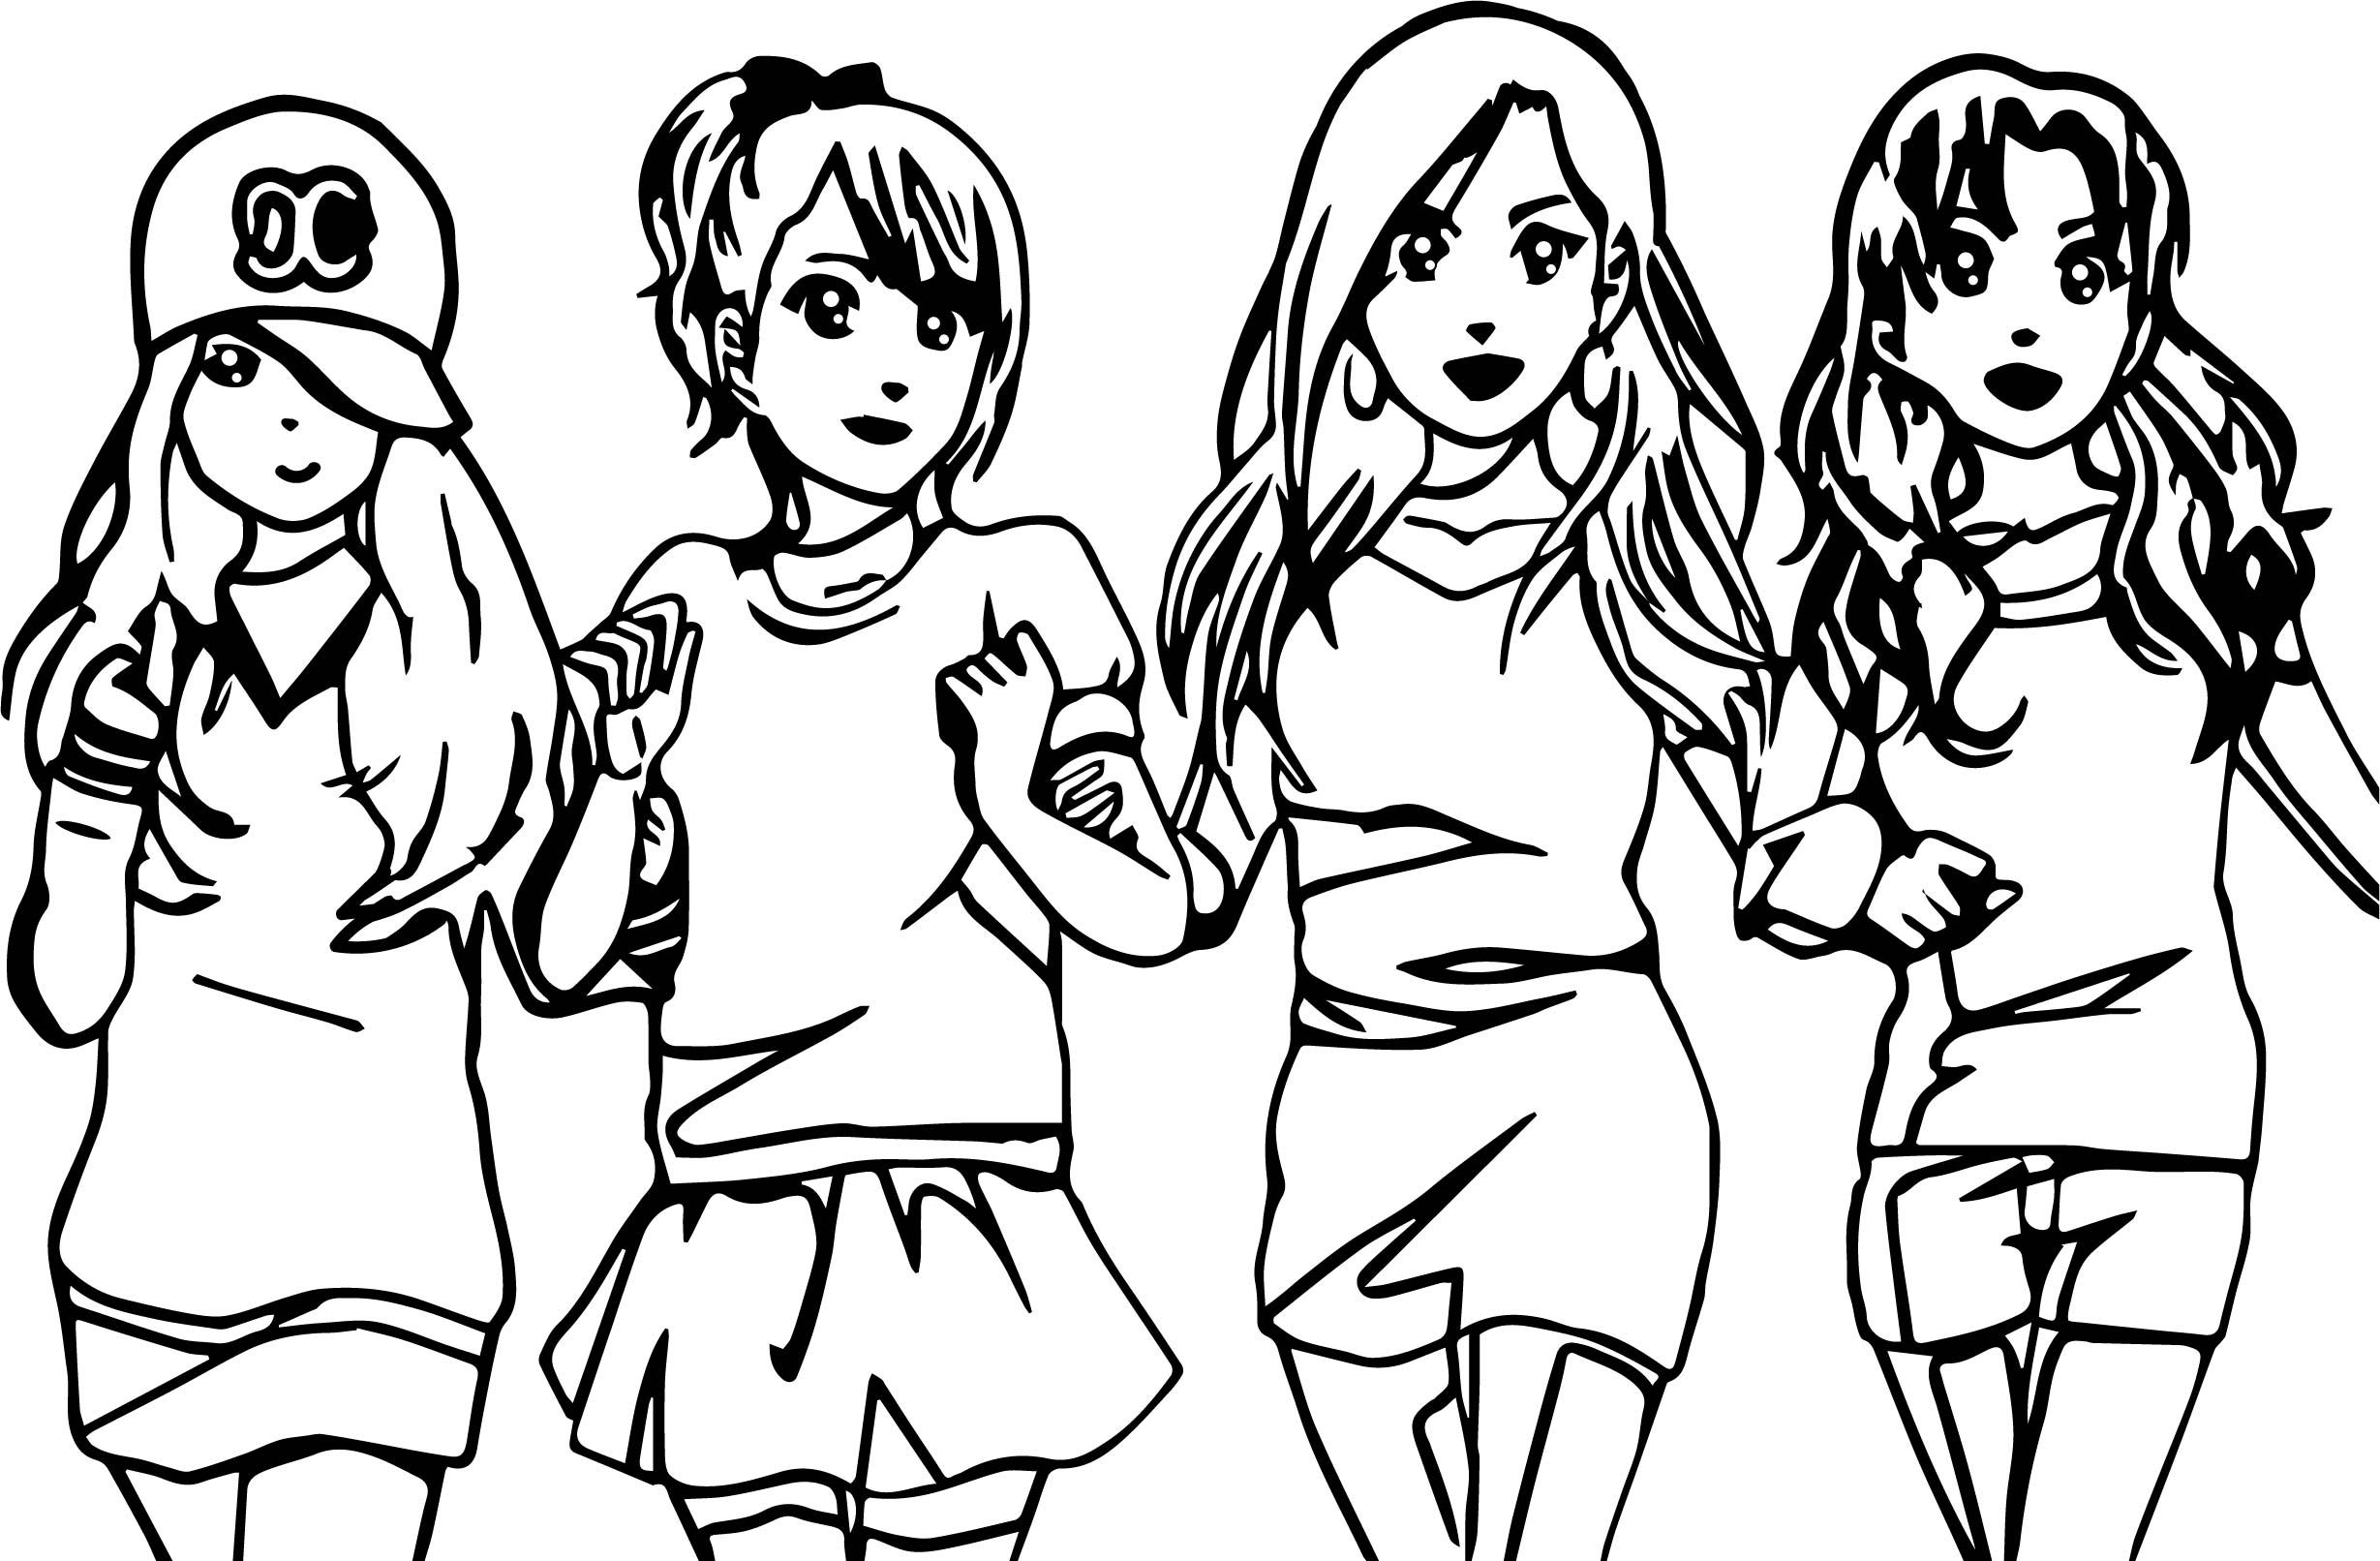 awesome Four Anime Best Friends Forever Coloring Page | Coloring ...